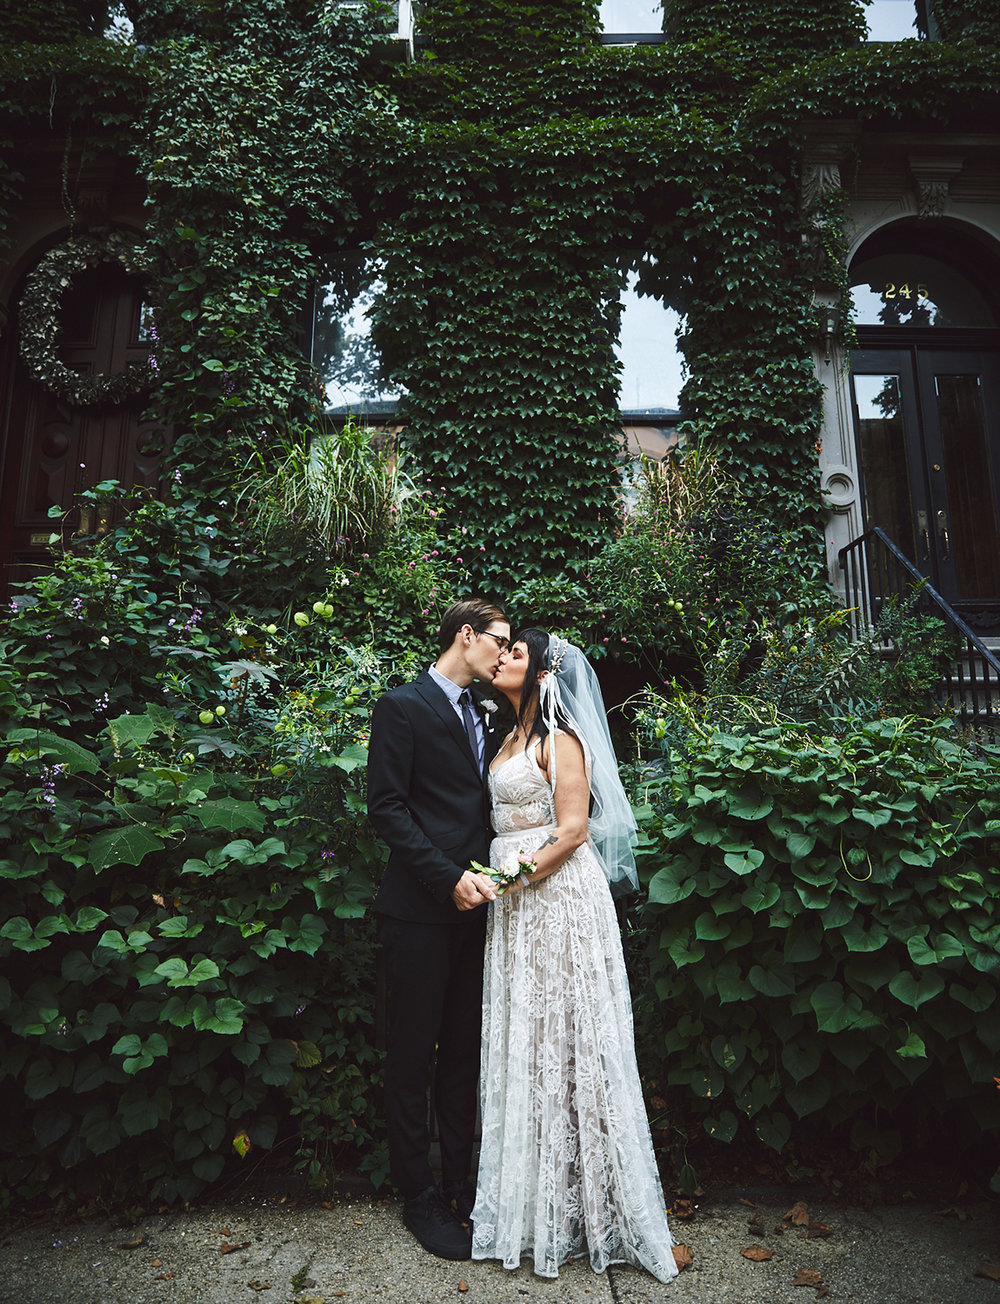 170920_FortGreeneWeddingPhotography_BrooklynWeddingPhotographer_By_BriJohnsonWeddings_0034.jpg